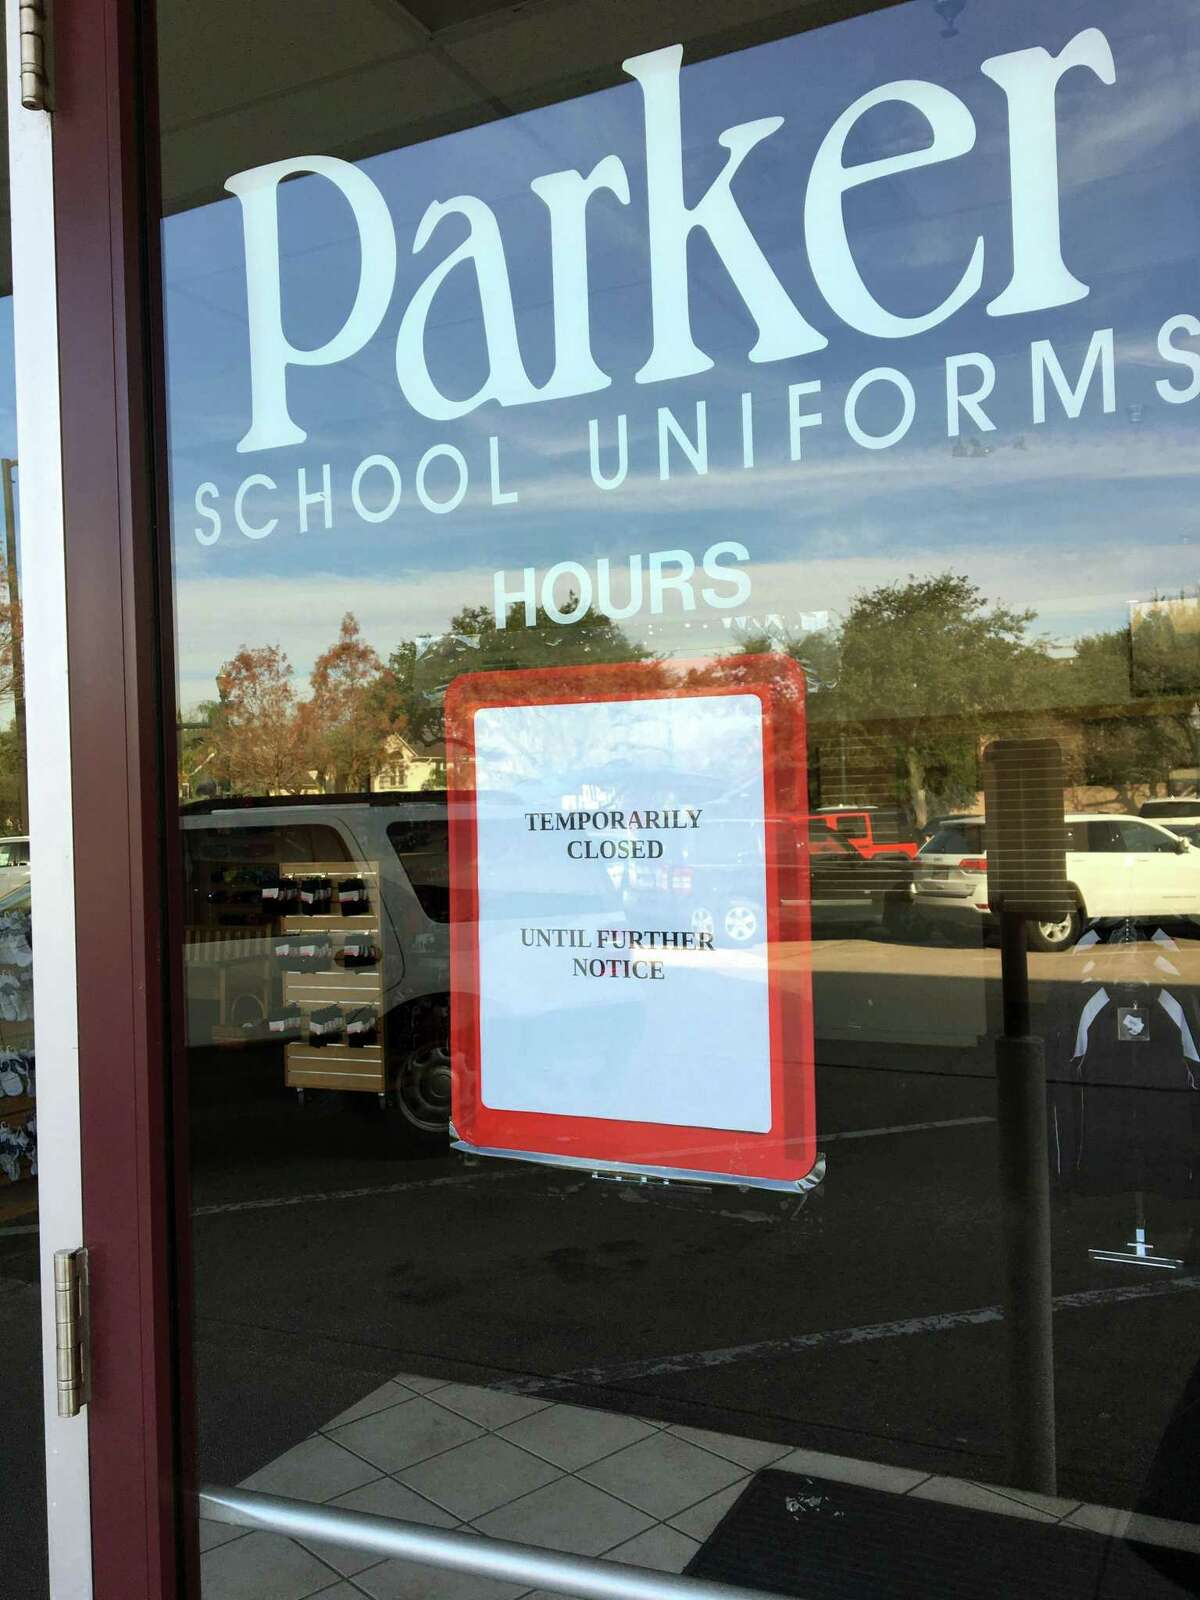 Parker School Uniforms operated 47 retail stores, including this one in its home town of Houston, before its collapse in 2018. Its closing cost 320 workers their jobs in Texas. A bankruptcy has reached a settlement of litigation filed against former company executives.